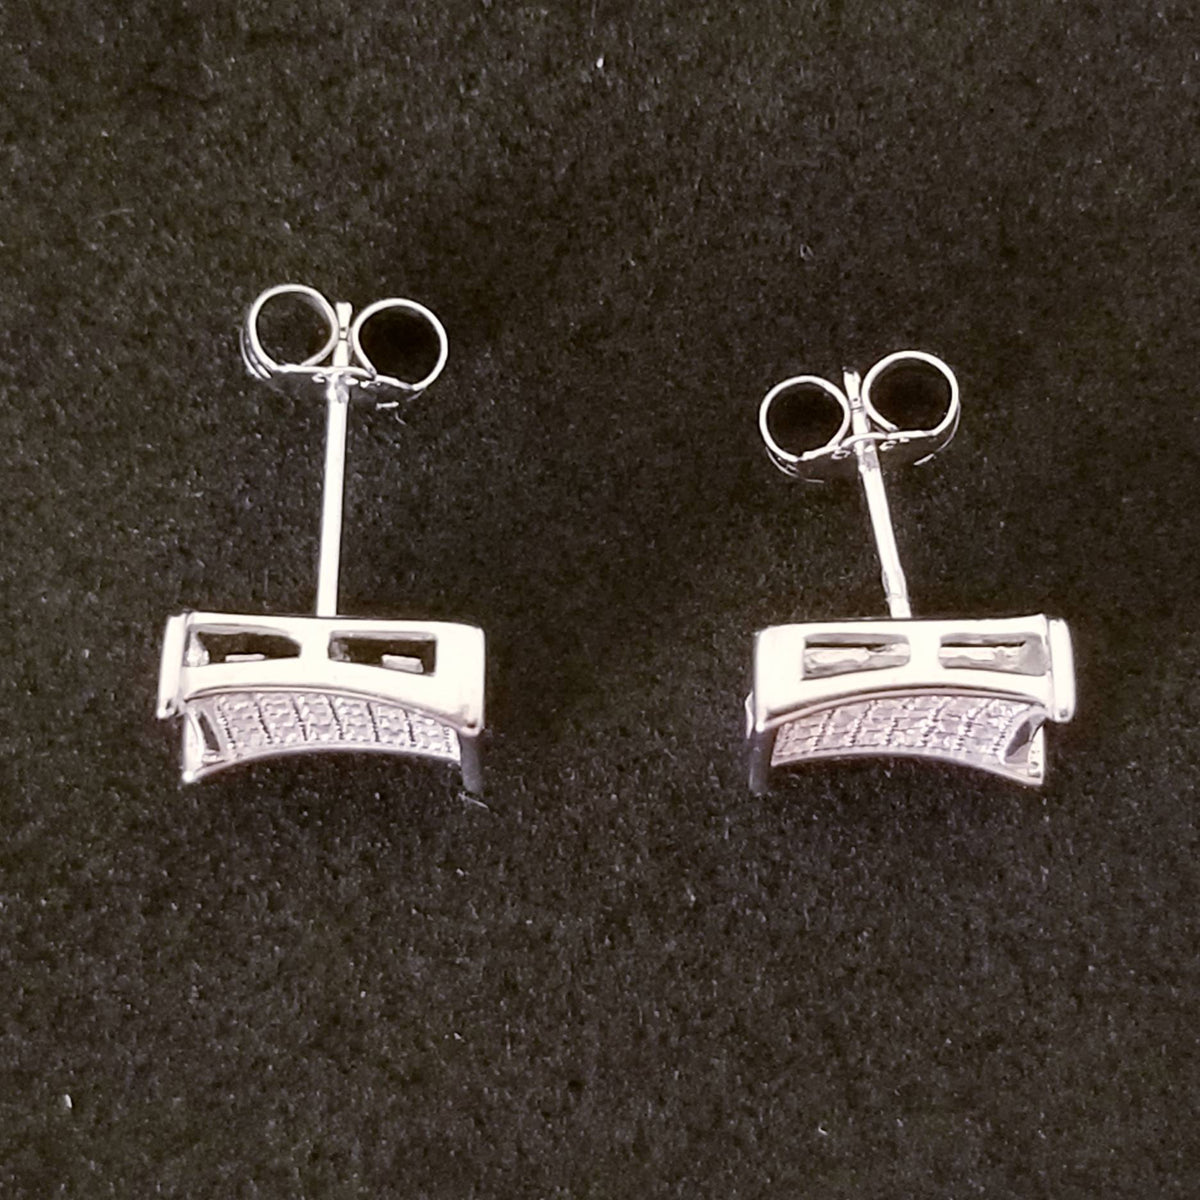 New 14K White Gold on 925 Sterling Silver Square CZ Stones Earrings